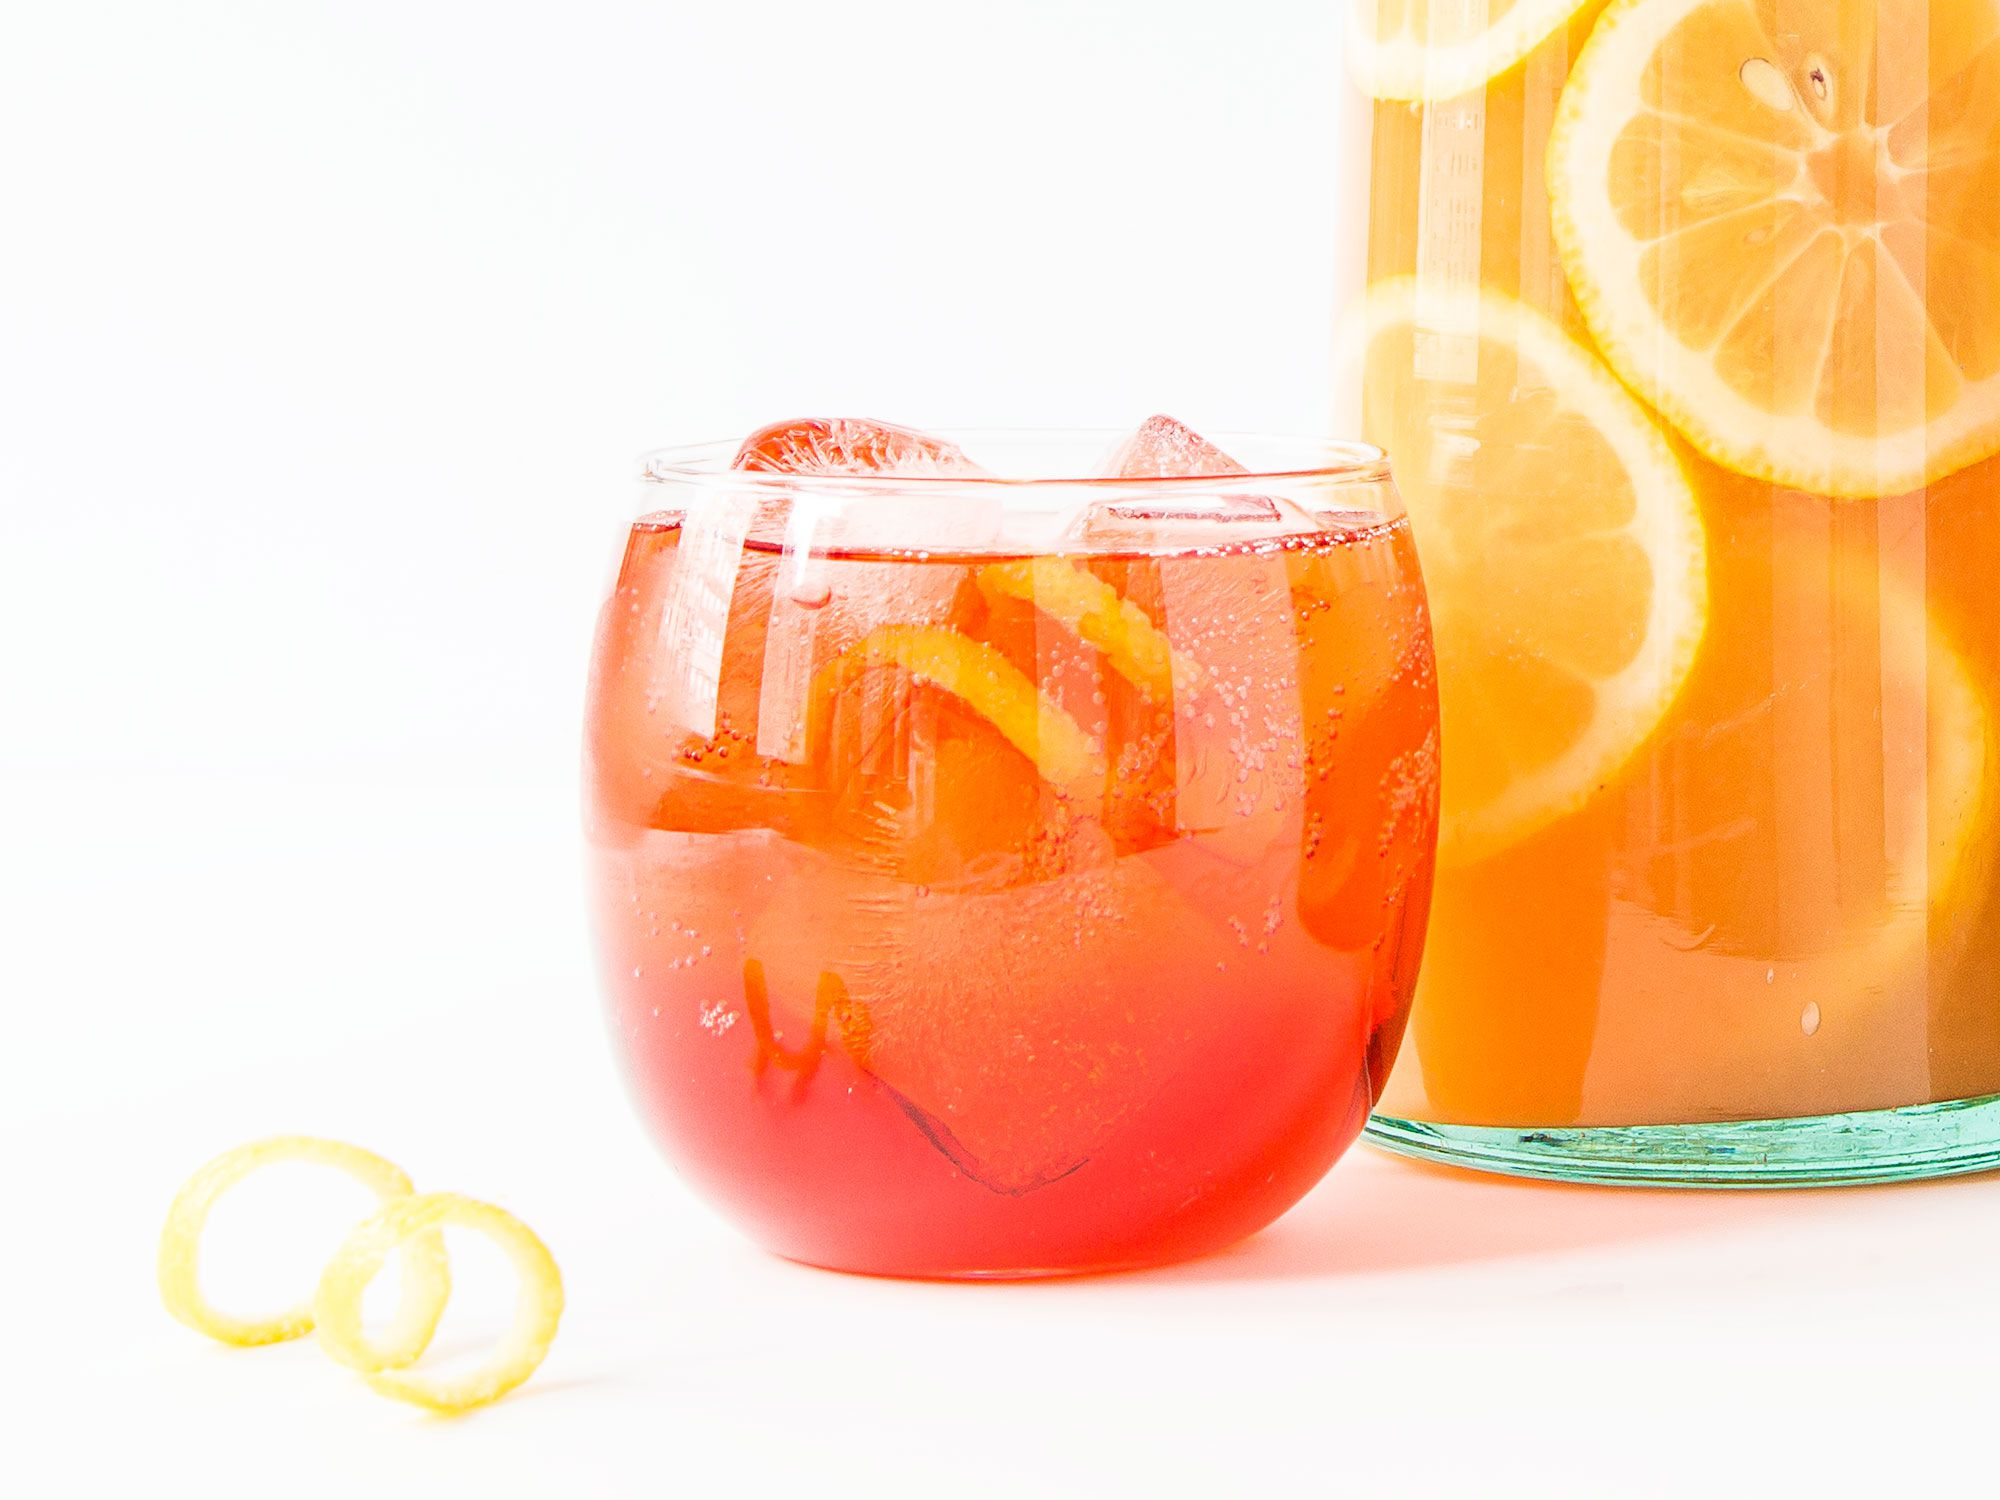 """This spritz cocktail swaps in a red wine aperitif in place of Aperol, for a cocktail with more pronounced red berry notes, and still plenty of effervescence. Get the recipe for <a href=""""http://www.saveur.com/moto-guzzi-cocktail-recipe"""">Moto Guzzi</a>"""